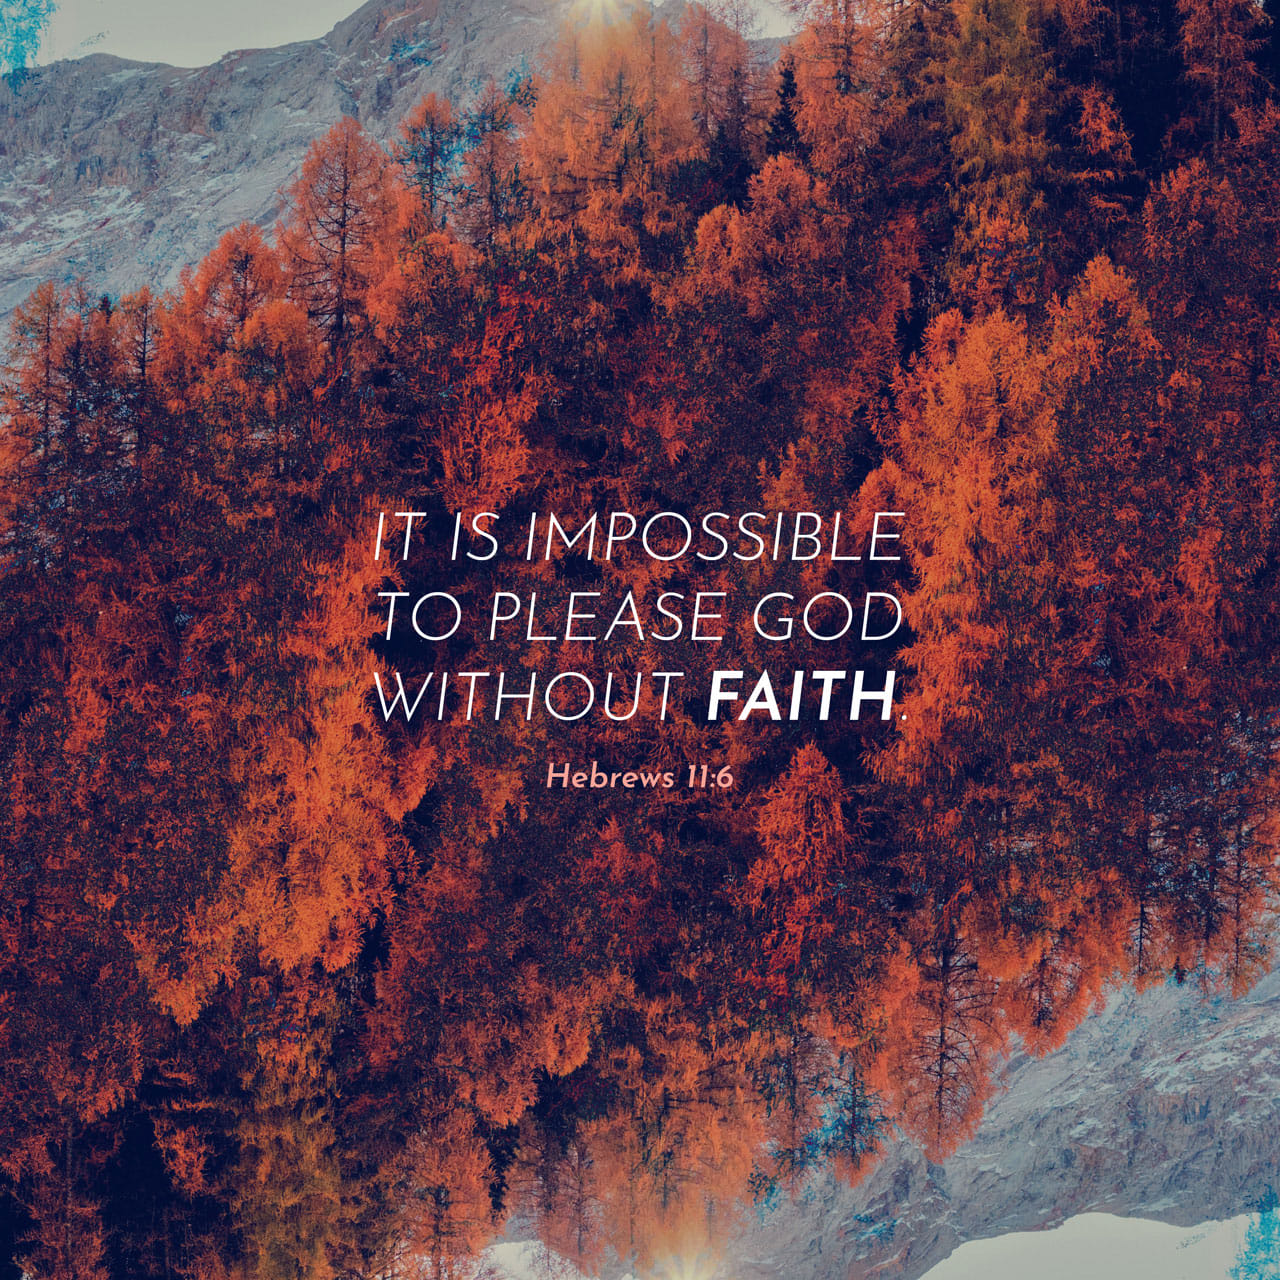 Hebrews 11:6 But without faith it is impossible to please ...